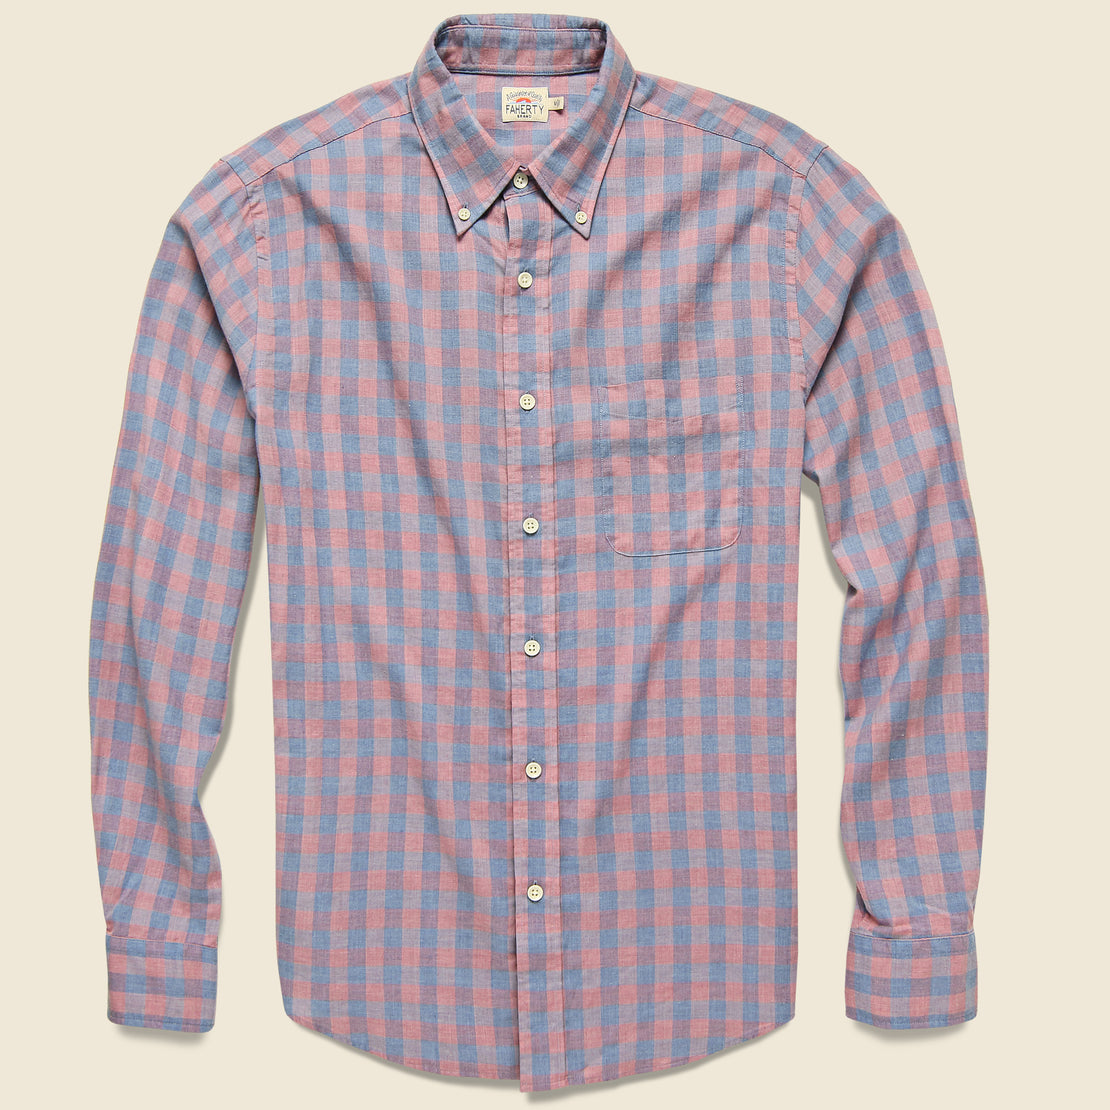 Faherty Everyday Shirt - Ojai Rose Check